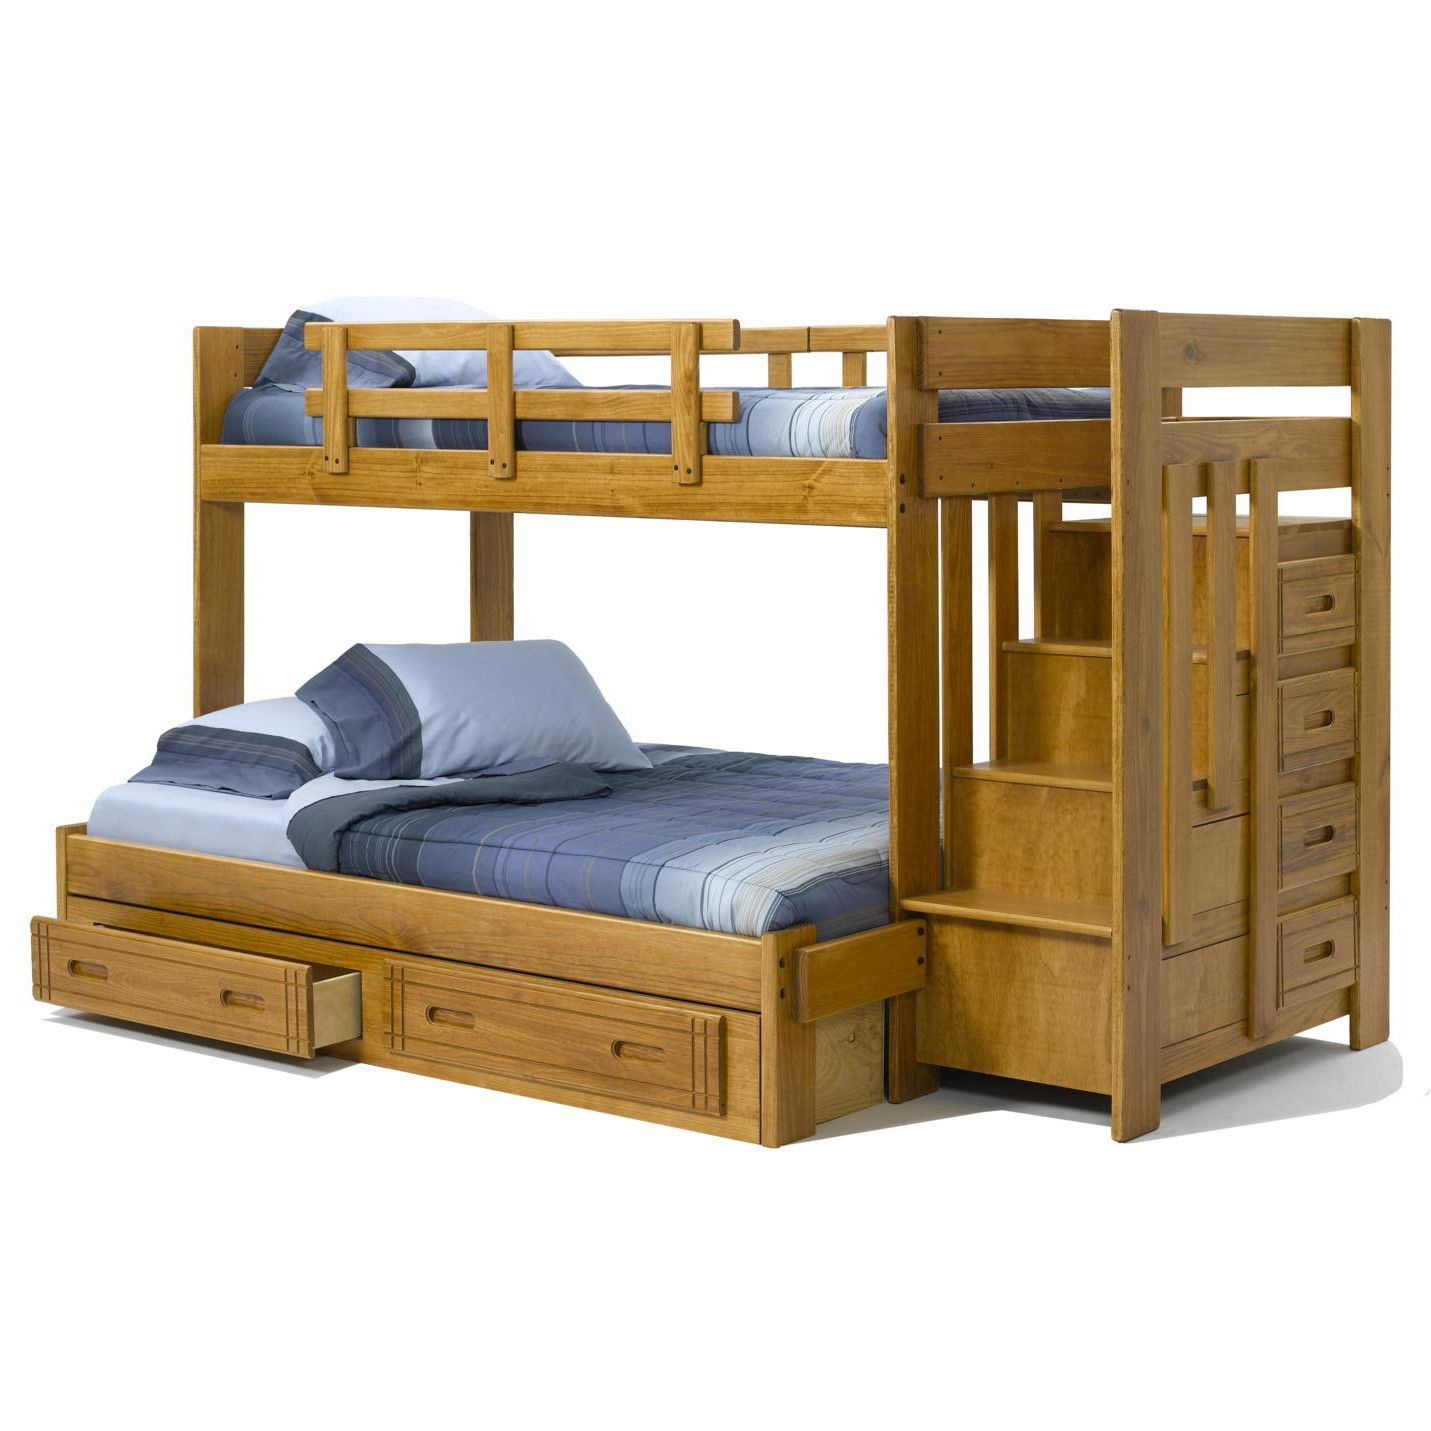 Lakeland mills twin over queen bunk bed amp reviews wayfair - Diy Woodworking Twin Bed My Little Lady Is Maturing Too Quickly It S Time For Her